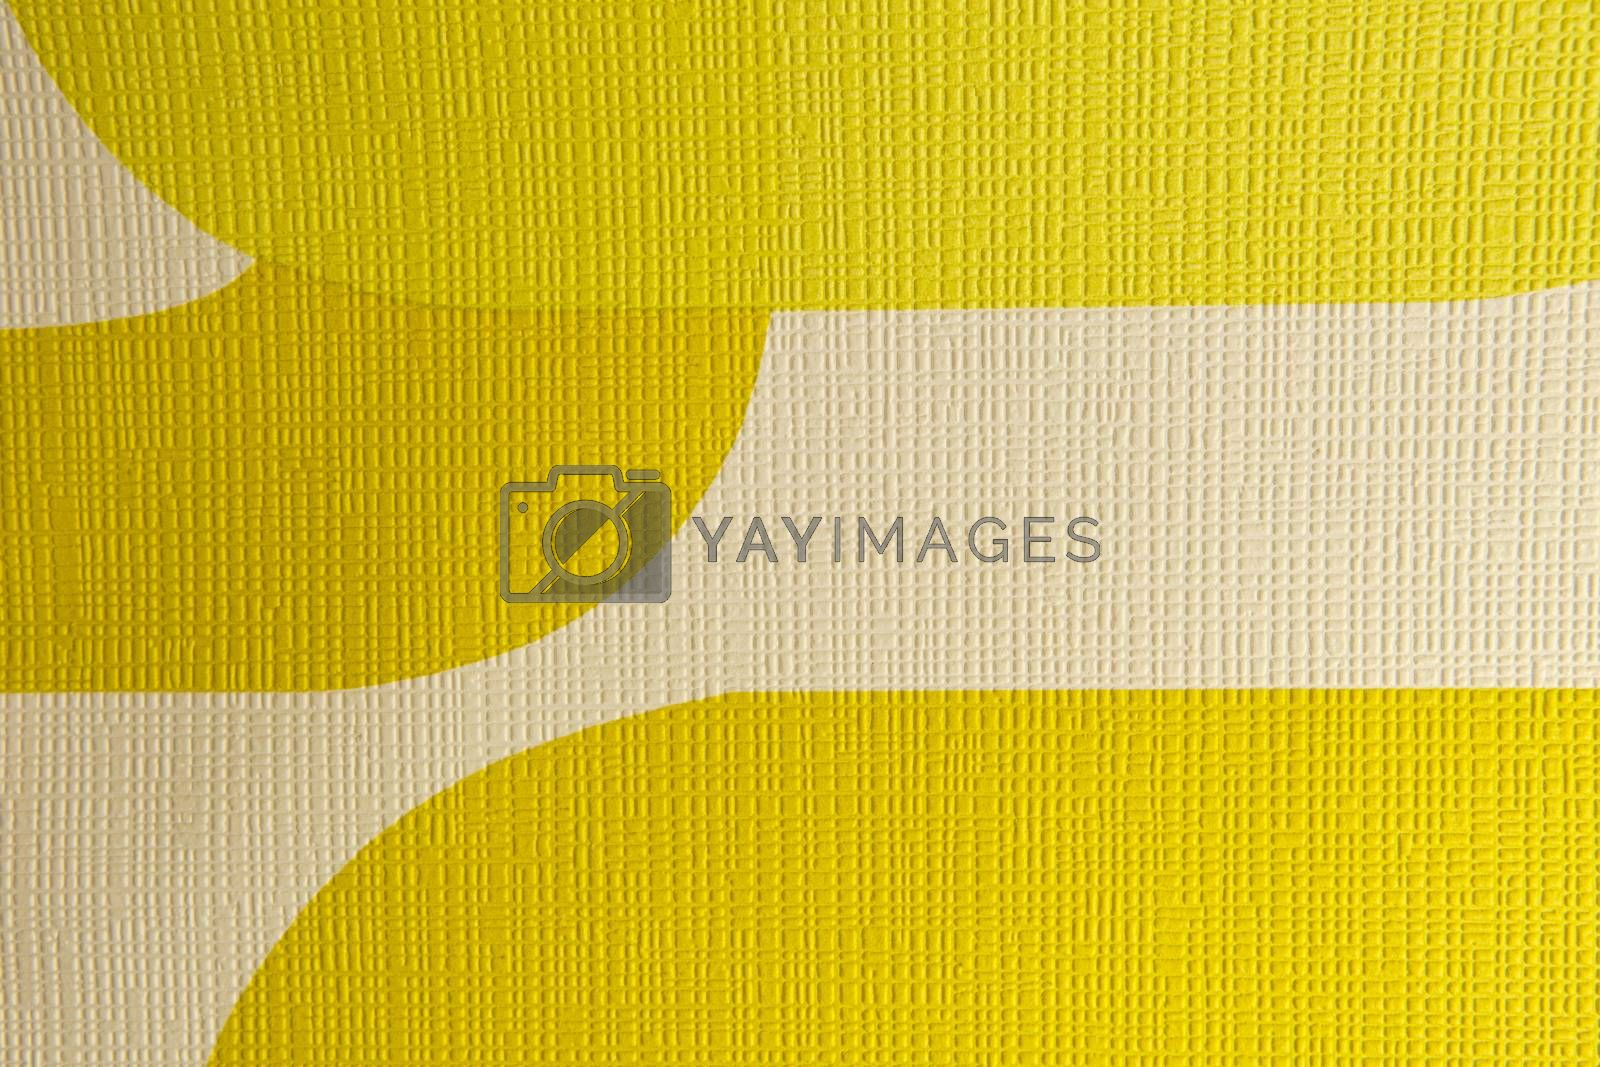 Retro funky yellow wallpaper design with texture.